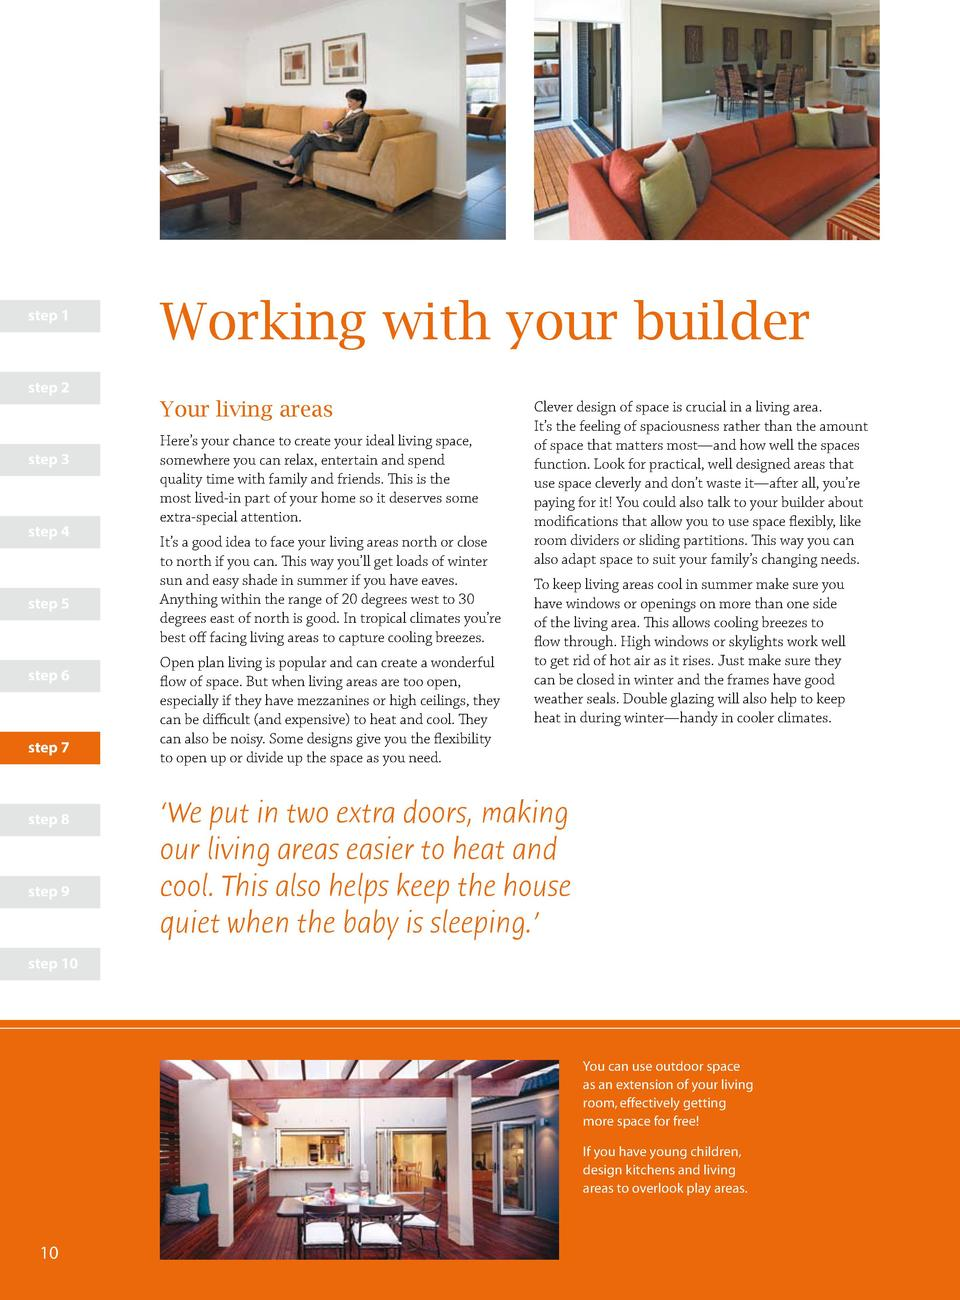 step 1  Working with your builder  step 2  Your living areas step 3  step 4  step 5  step 6  step 7  step 8  step 9  Here ...